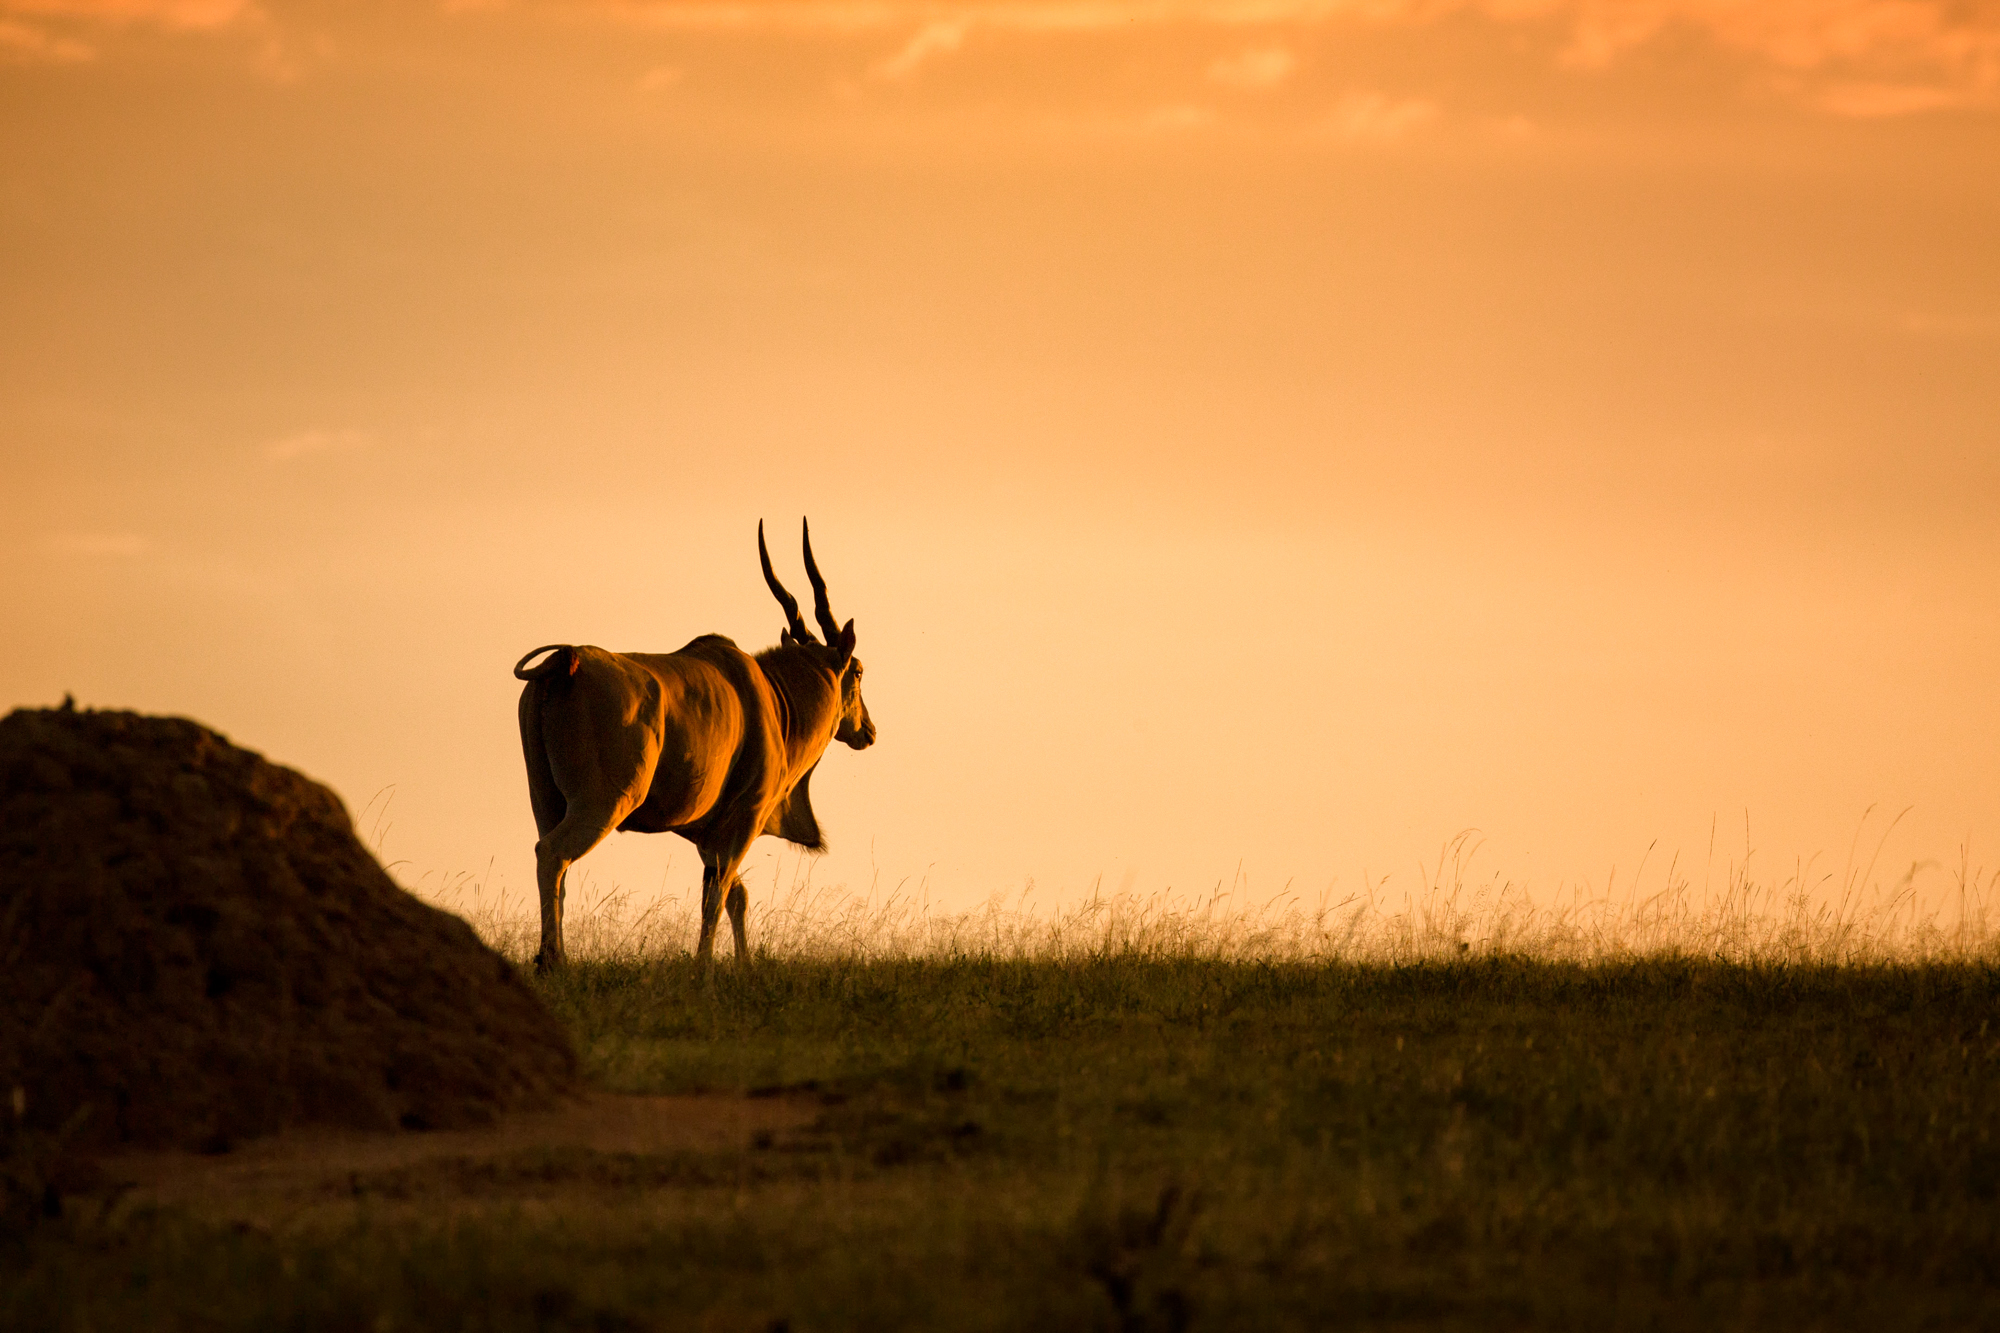 An Eland standing on the horizon at dusk.